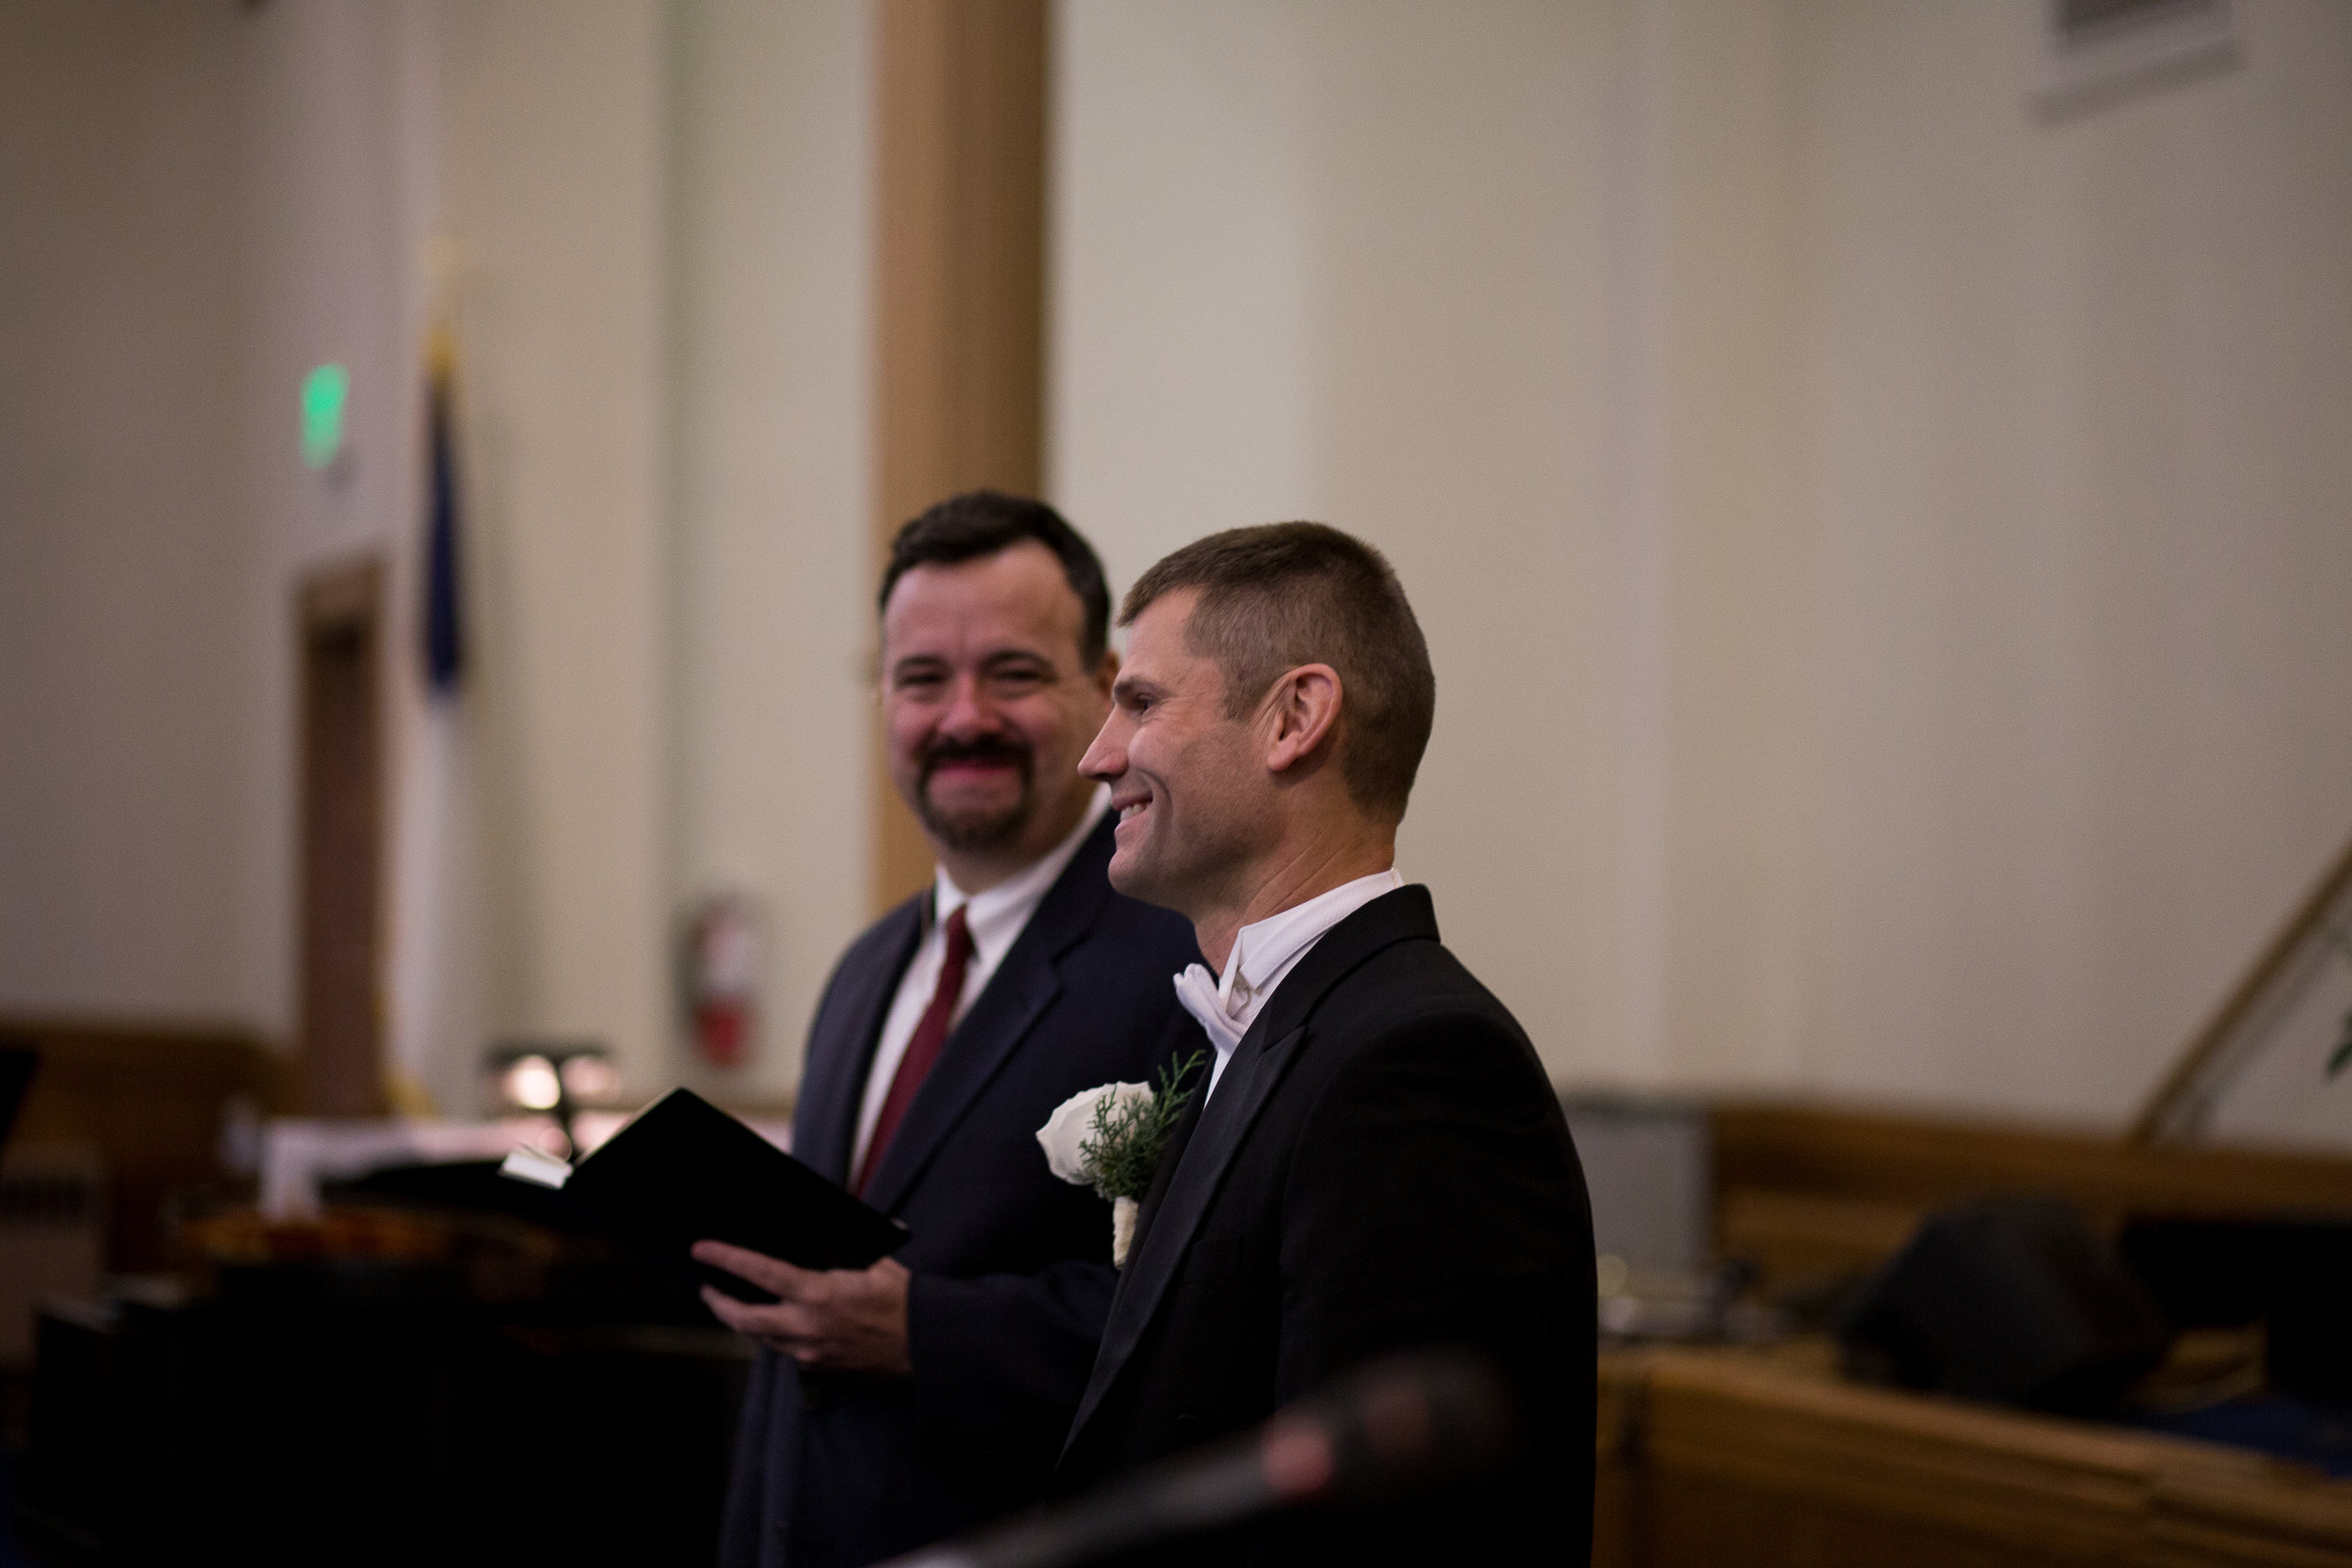 Groom smiles as a watches his bride walk down aisle at First Baptist Church wedding in Colorado Springs Stacy Carosa Photography